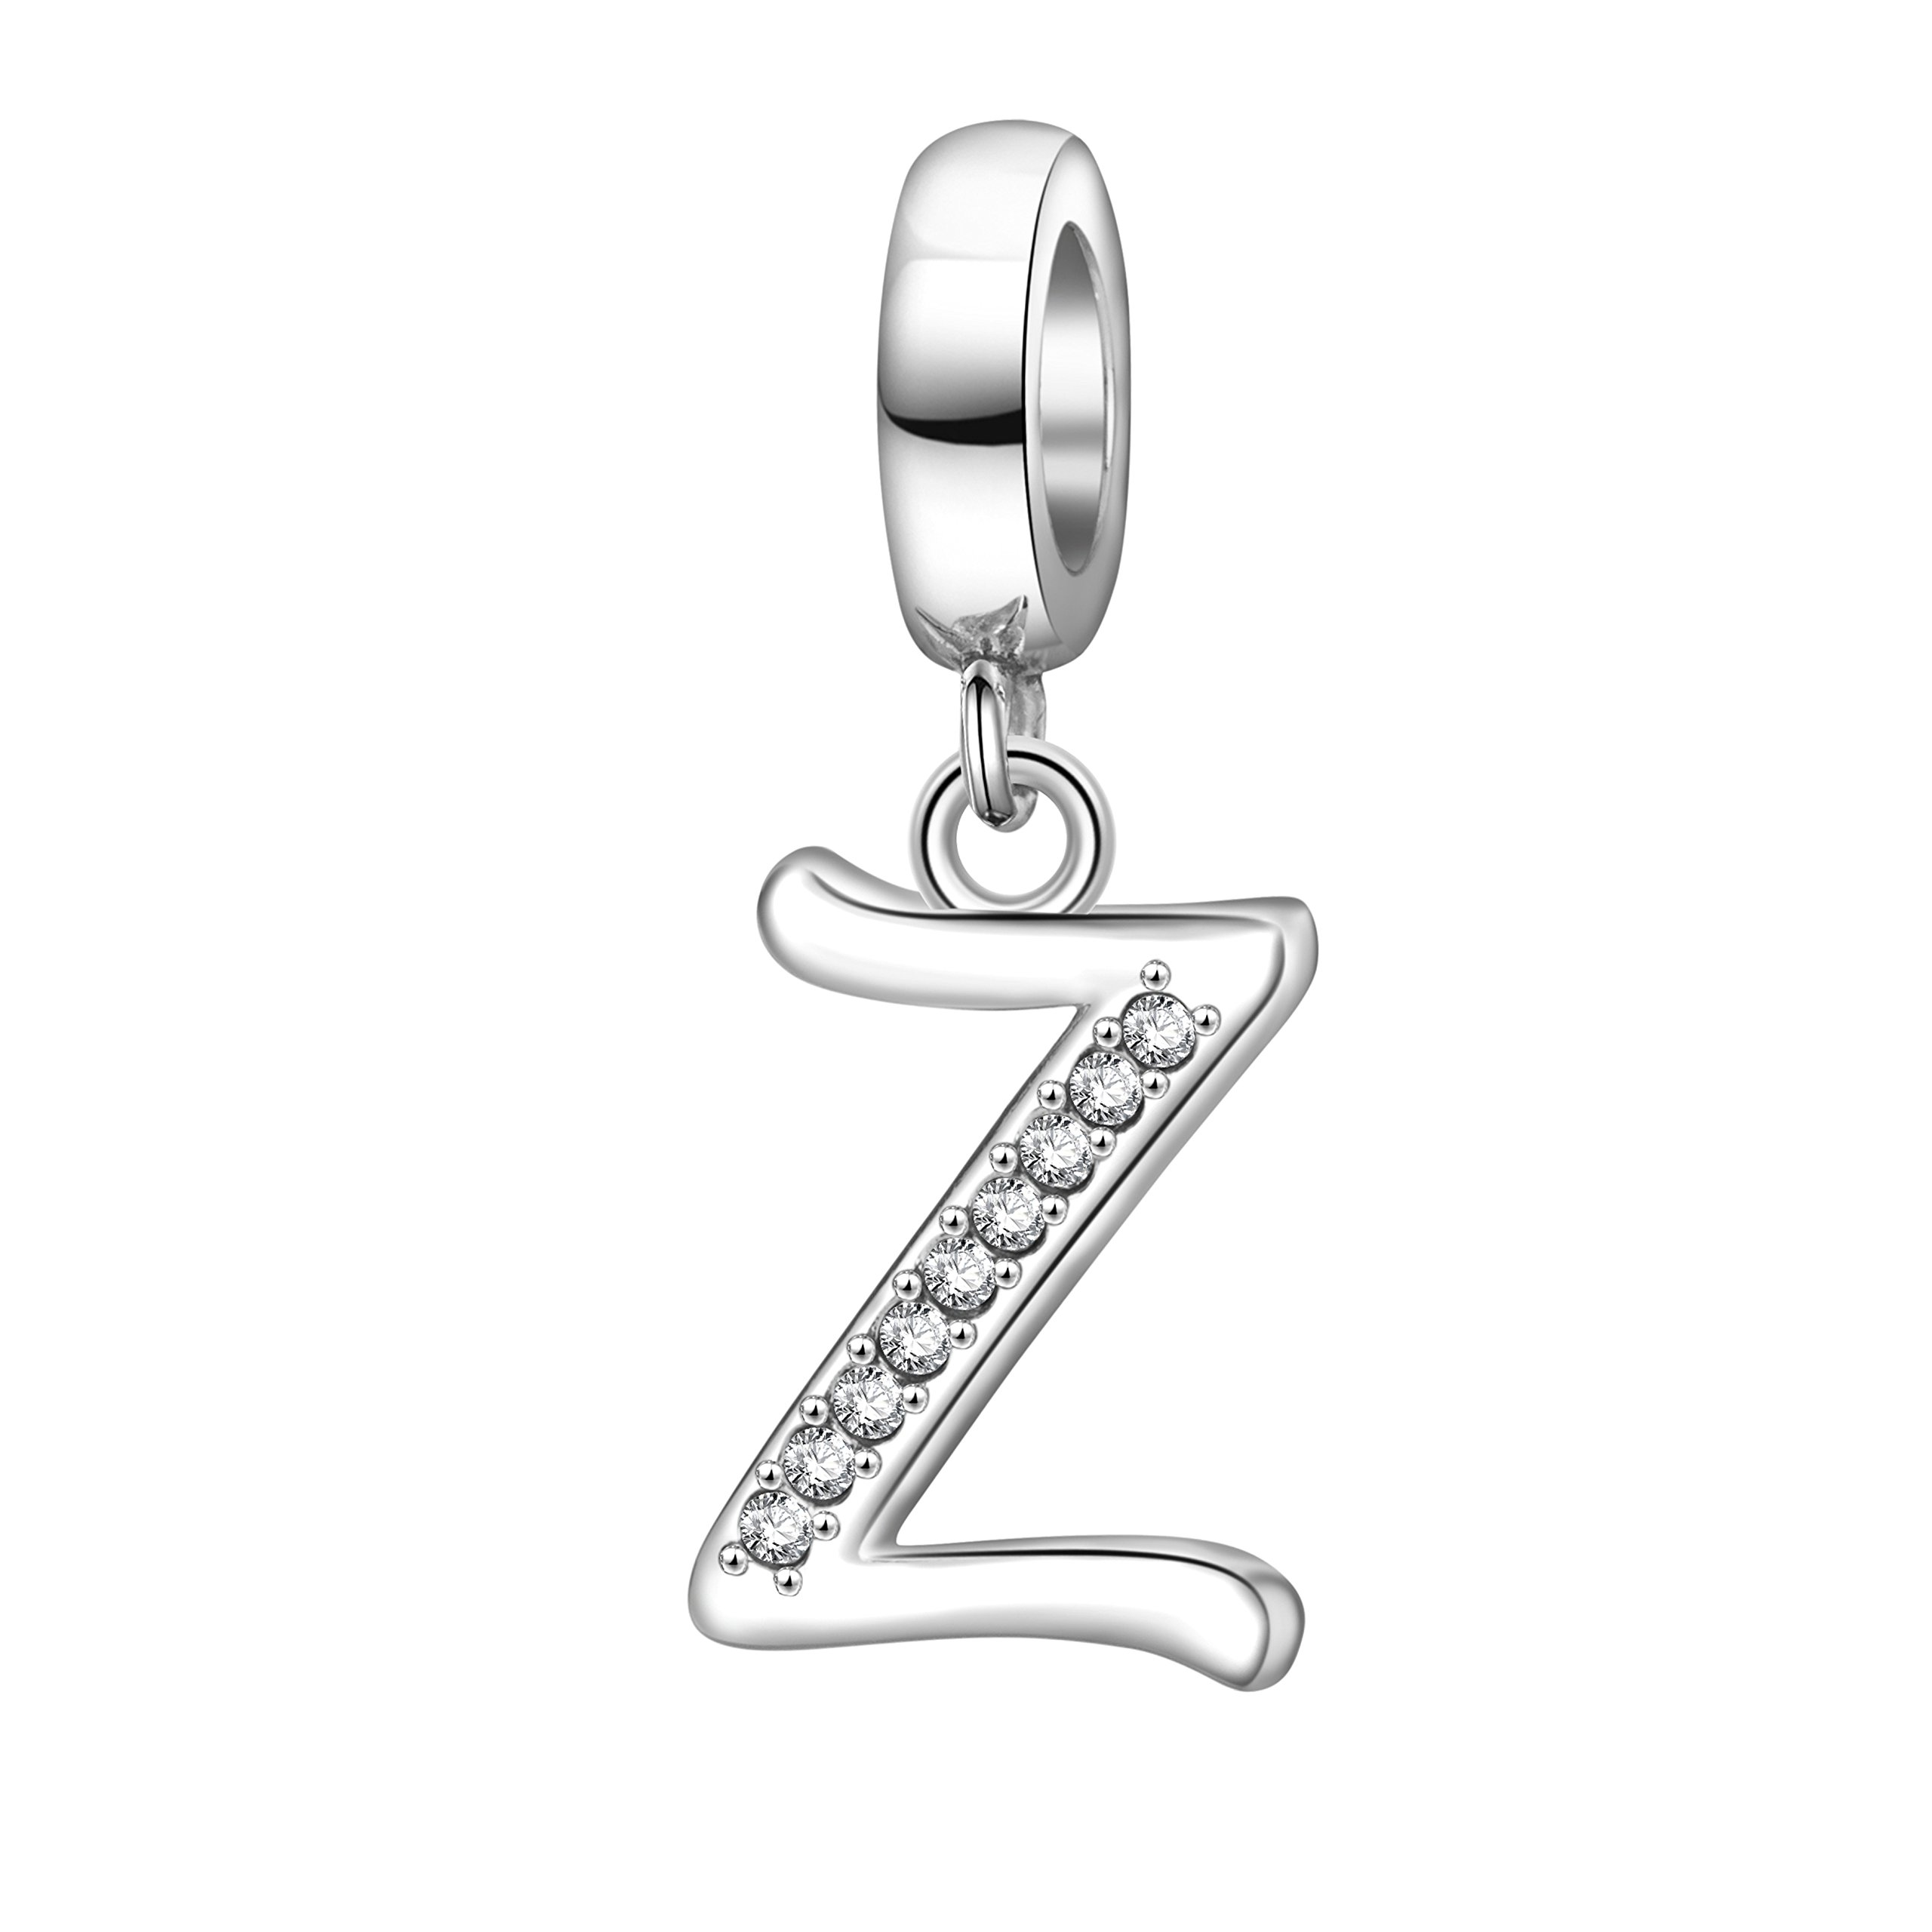 Hoobeads-Alphabet-Letter-Charms-Solid-925-Sterling-Silver-Letter-Initial-A-Z-Crystal-Charms-Bead-for-Bracelet-Necklace